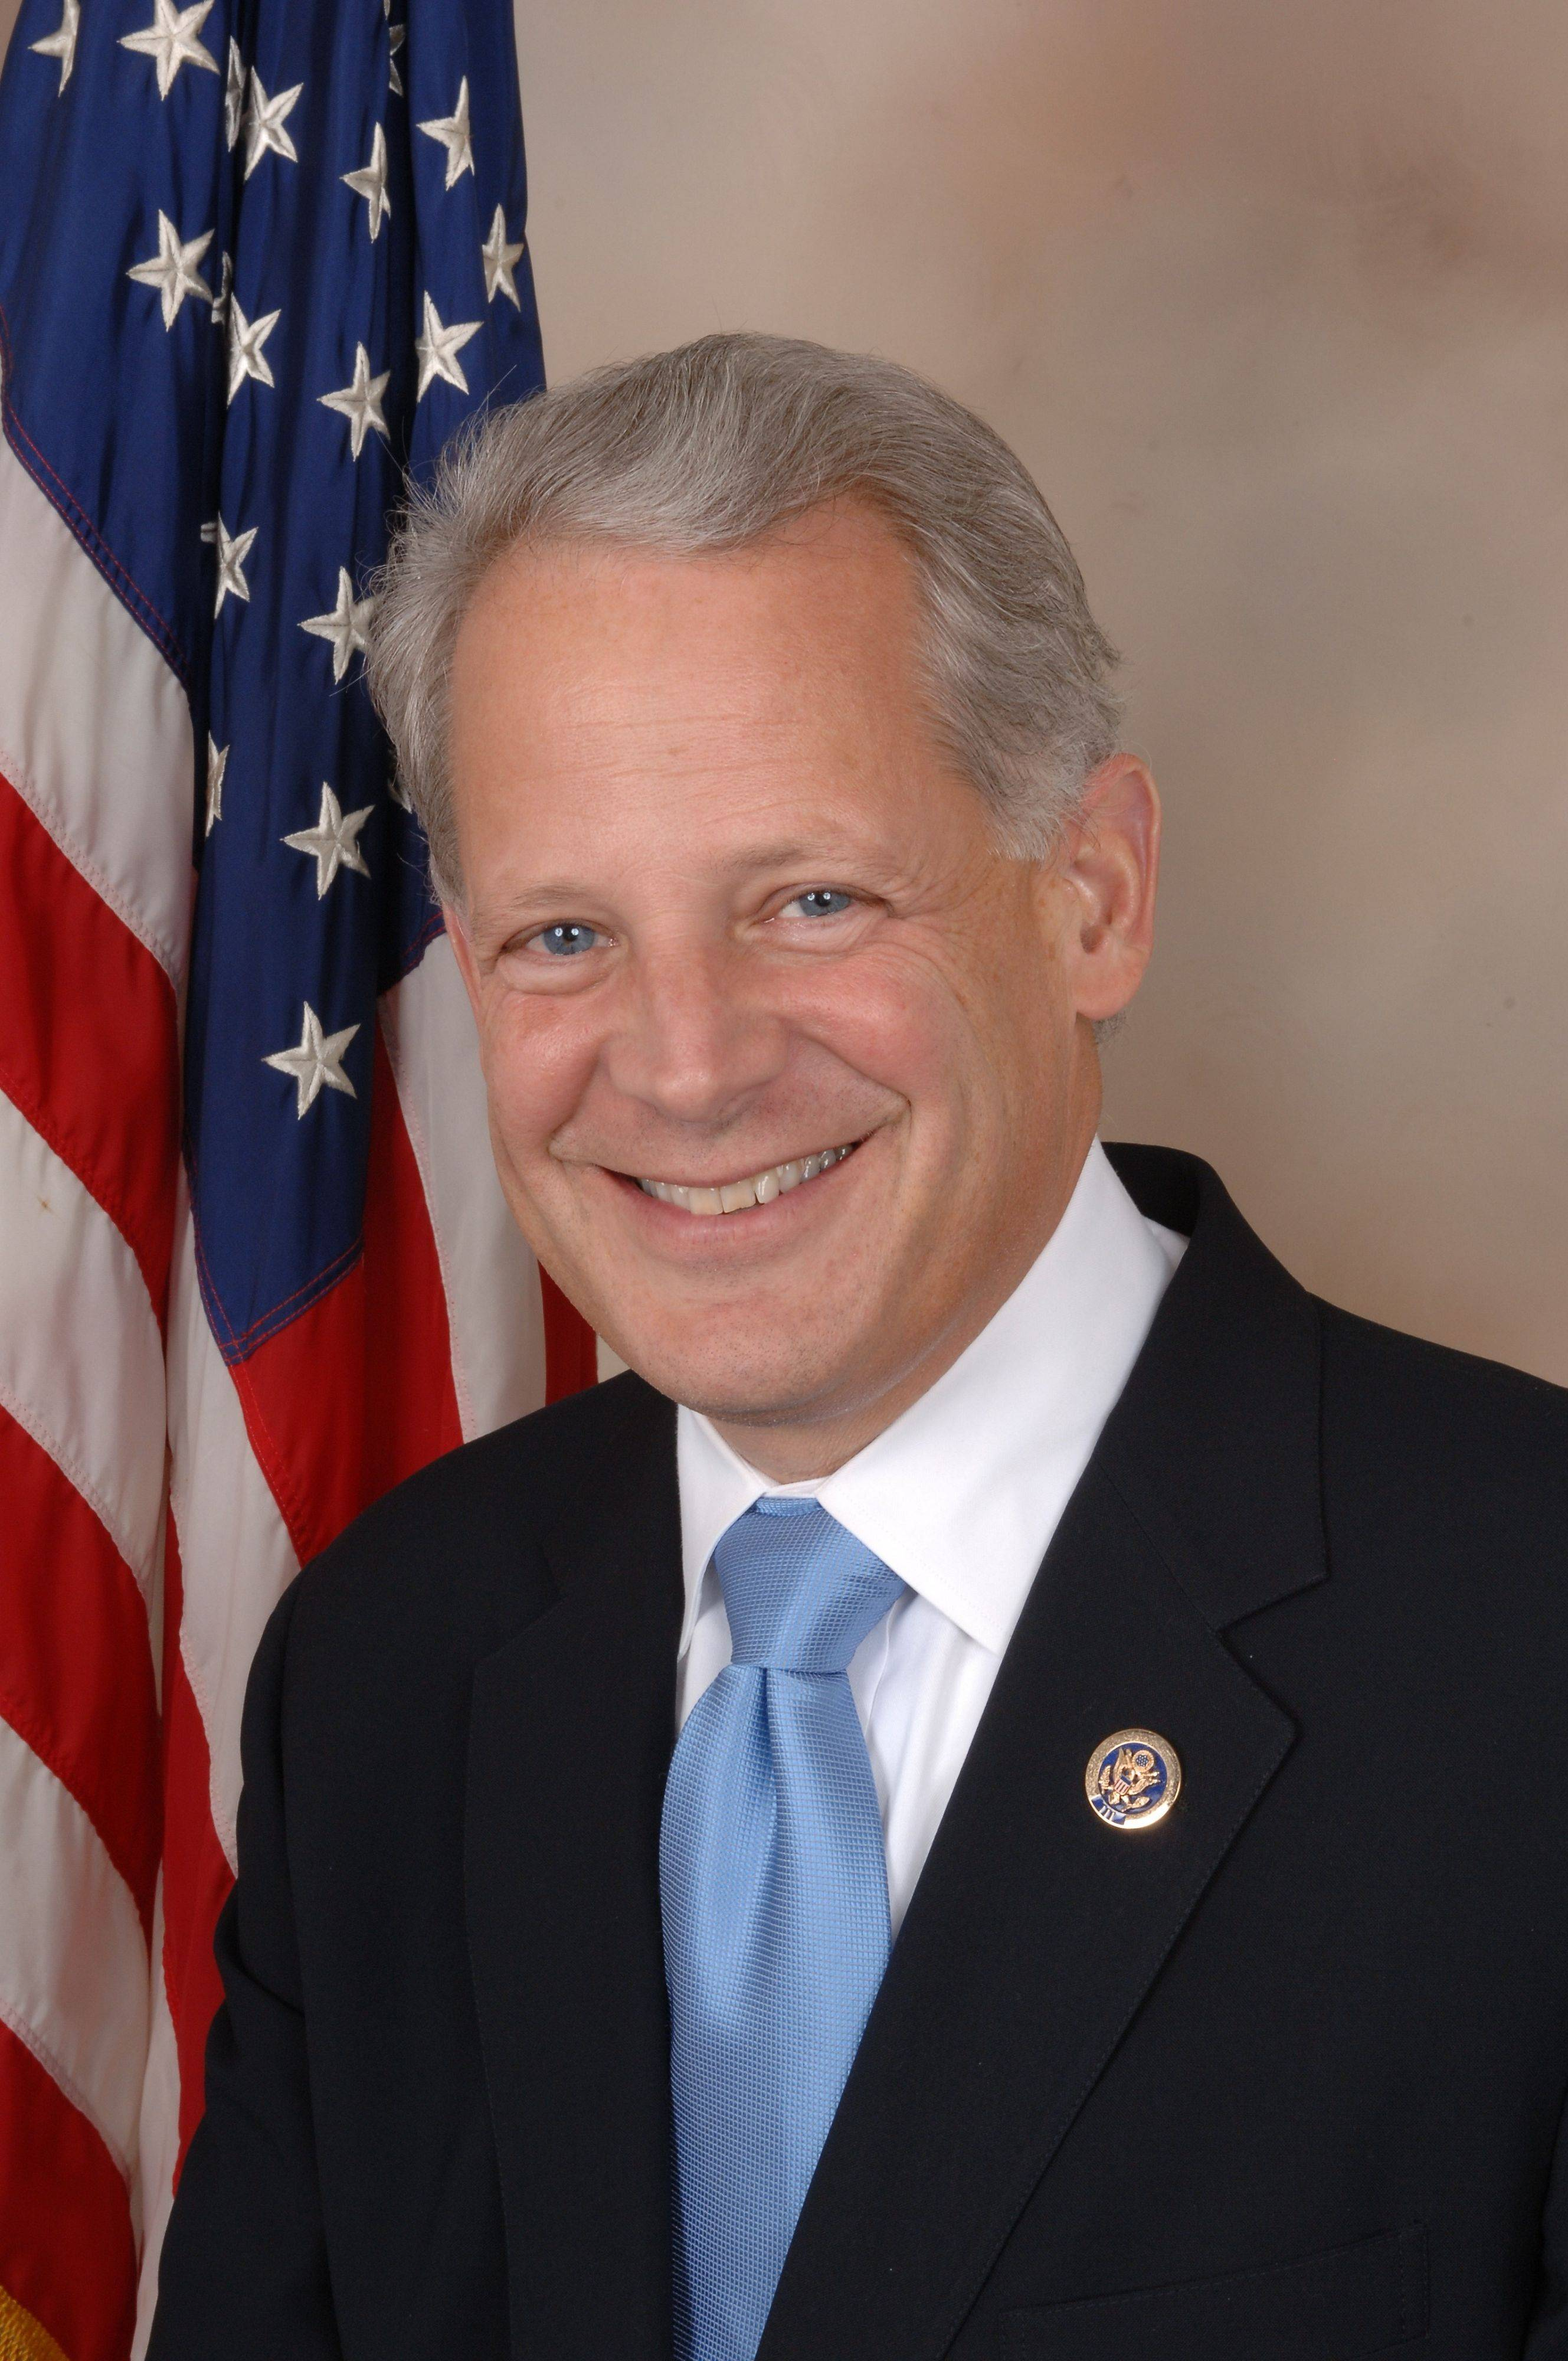 U.S. Rep. Steve Israel, a Democrat from New York